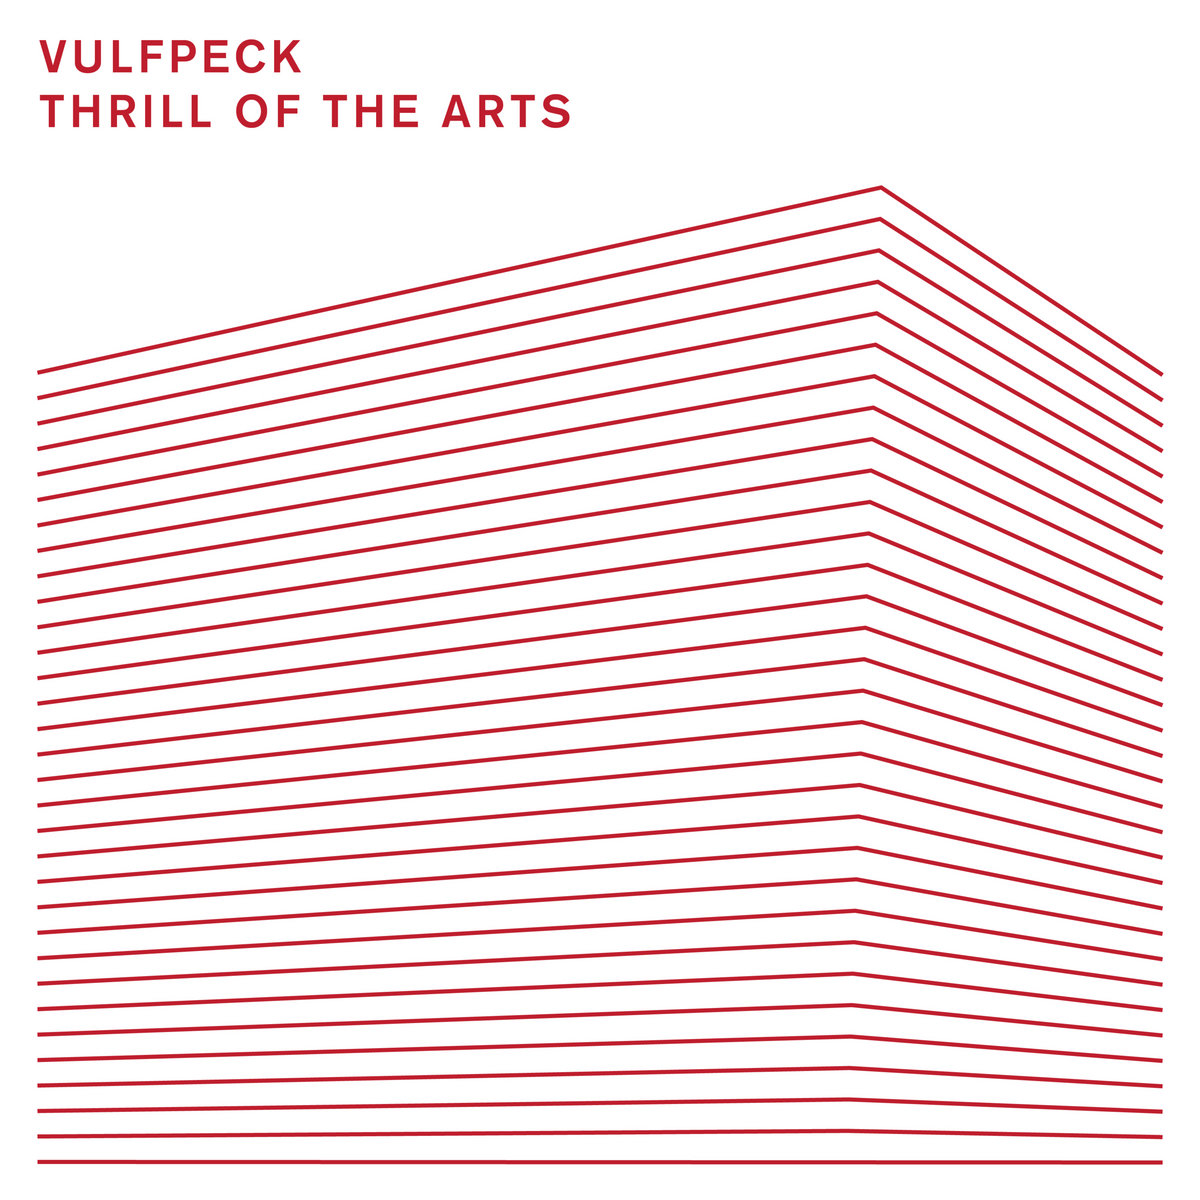 Thrill of the Arts | Vulfpeck